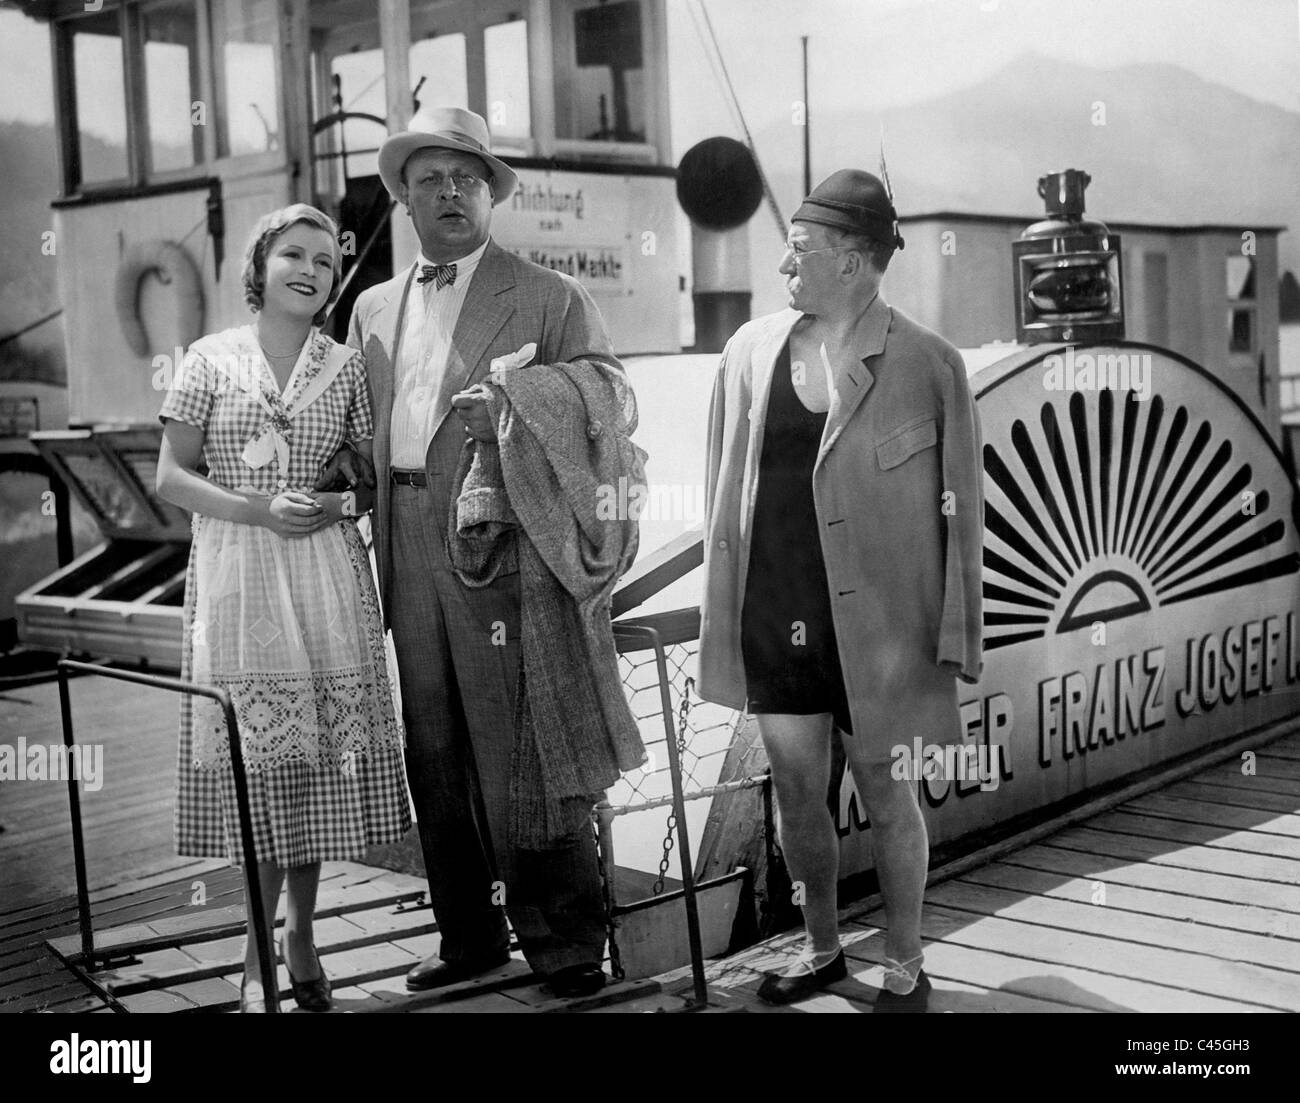 Renate Mueller, Emil Jannings and Max Guelstorff in the movie 'Darling of the gods', 1930 - Stock Image